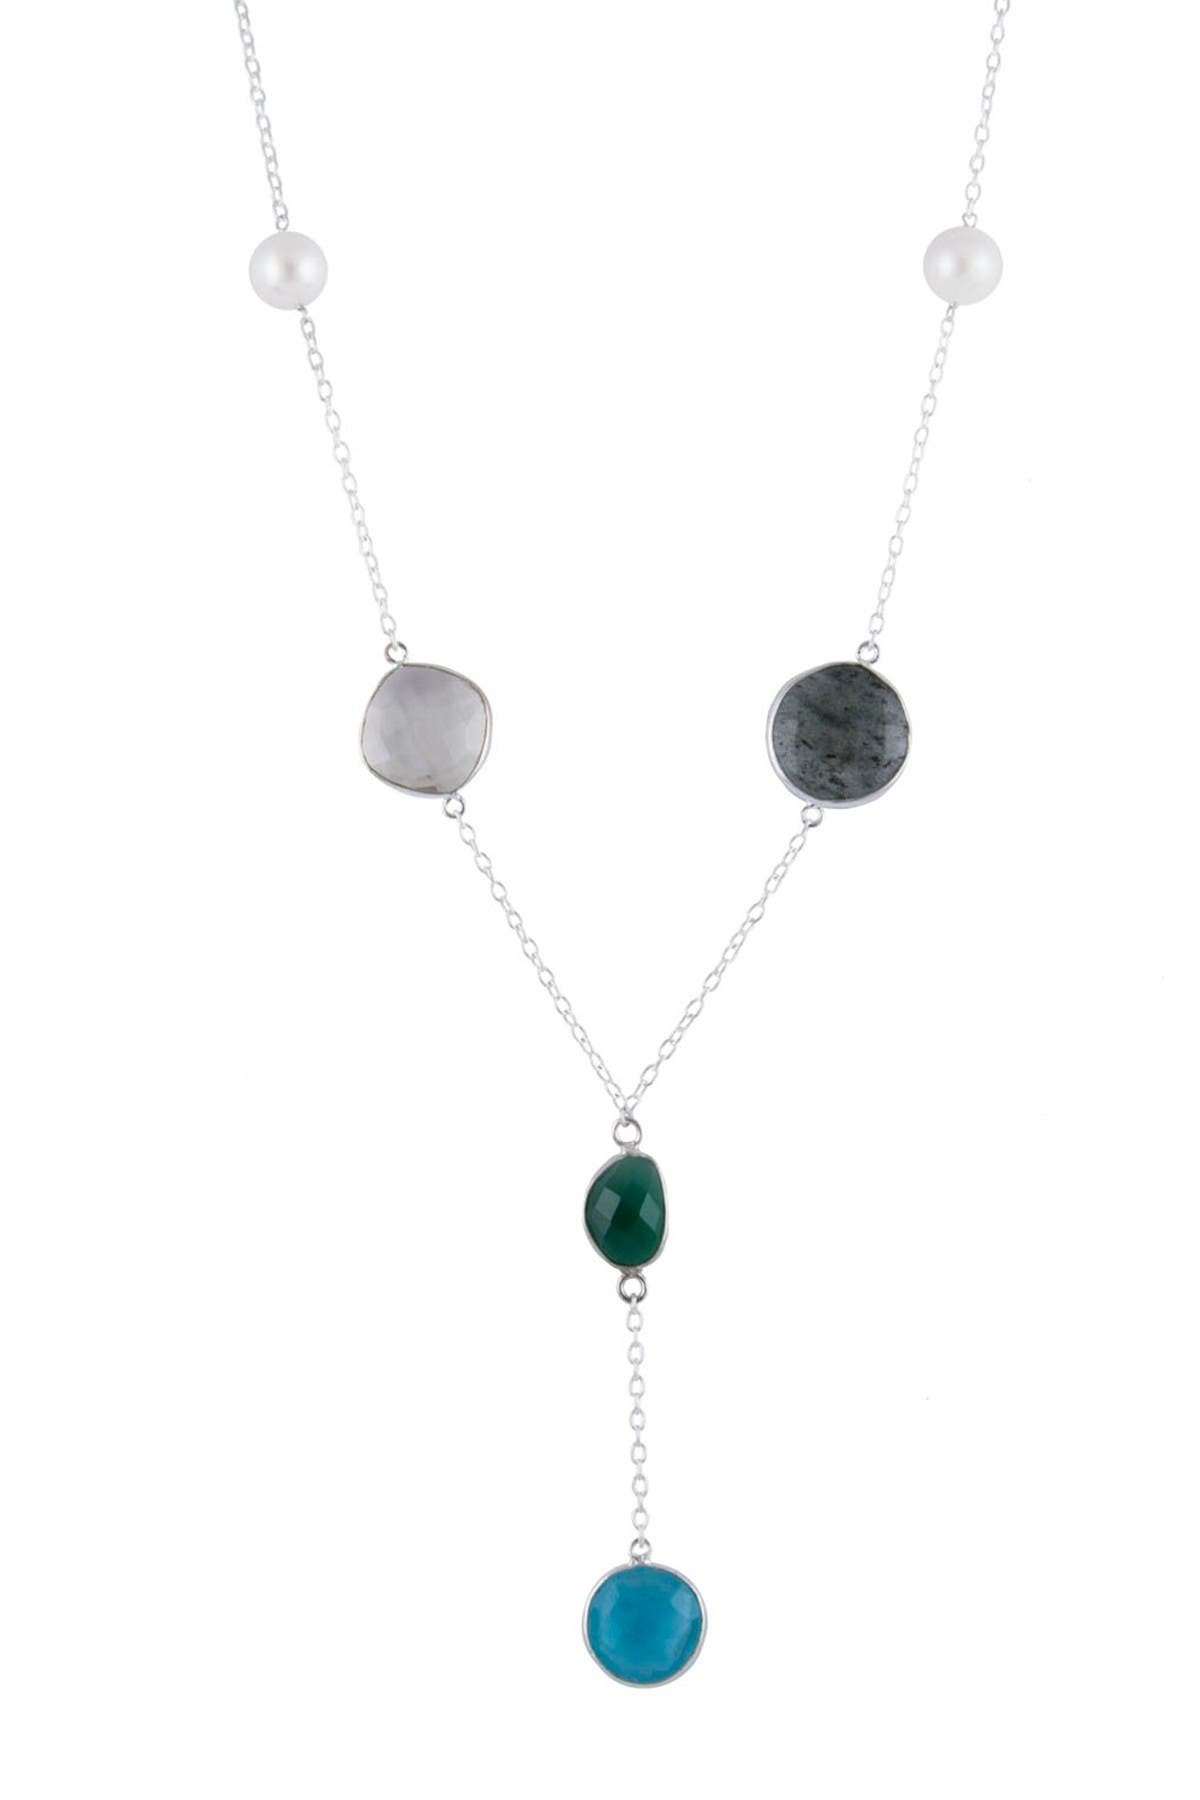 Image of Splendid Pearls Sterling Silver 8-9mm Freshwater Pearl & Quartz Station Pendant Necklace